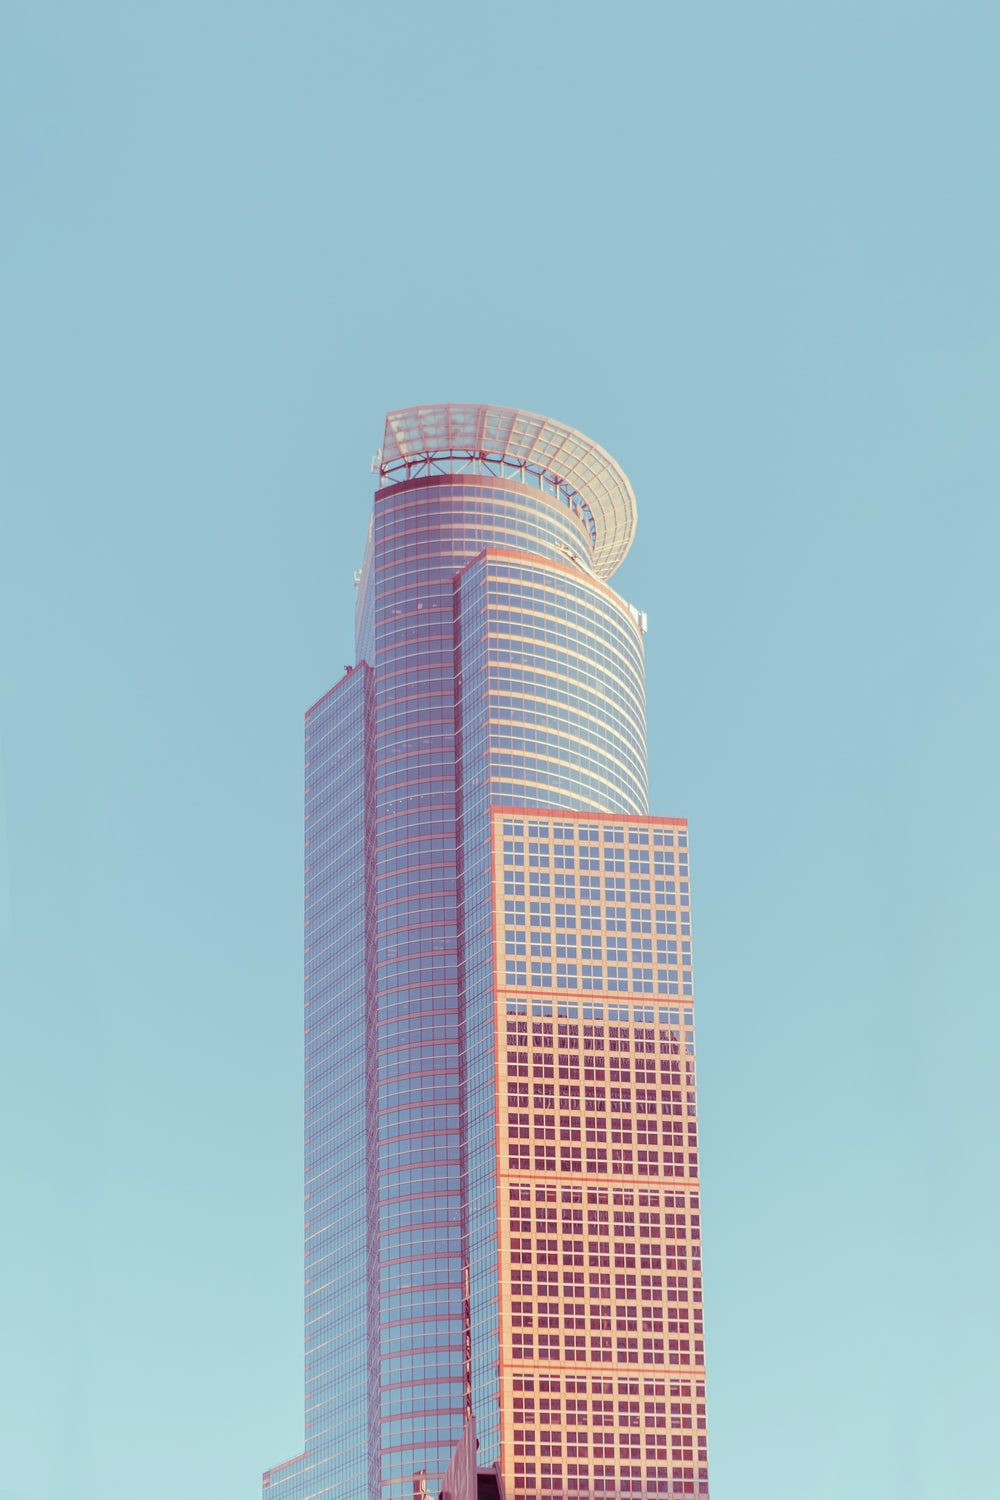 pink and white concrete building